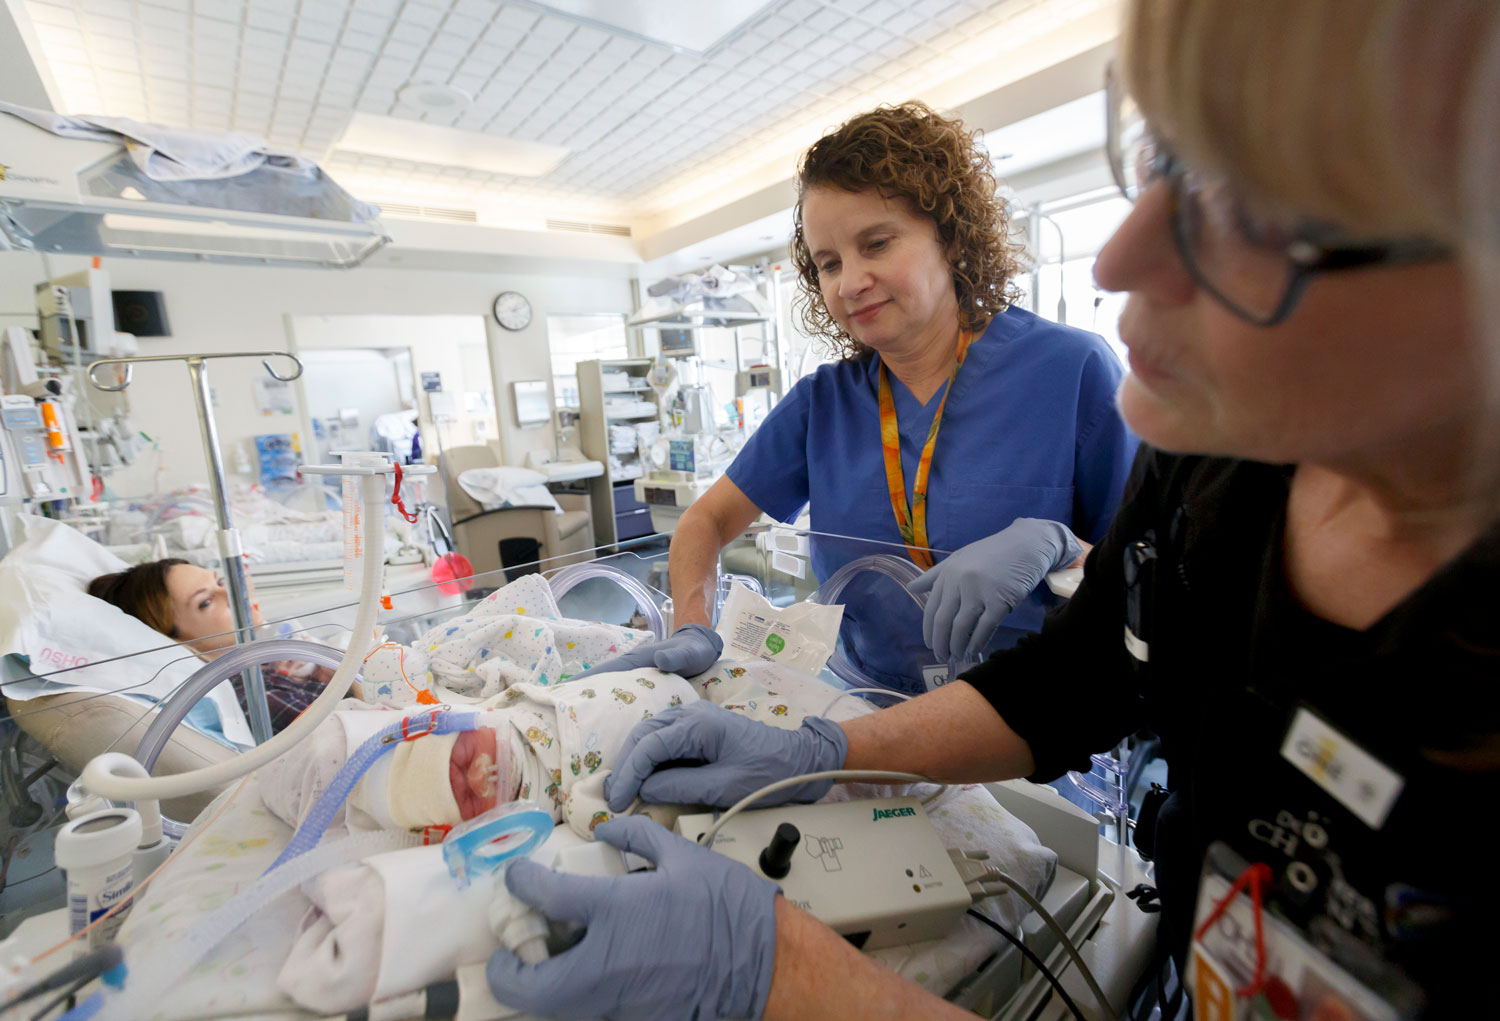 Doctor Cindy McEvoy working with a baby in the NICU